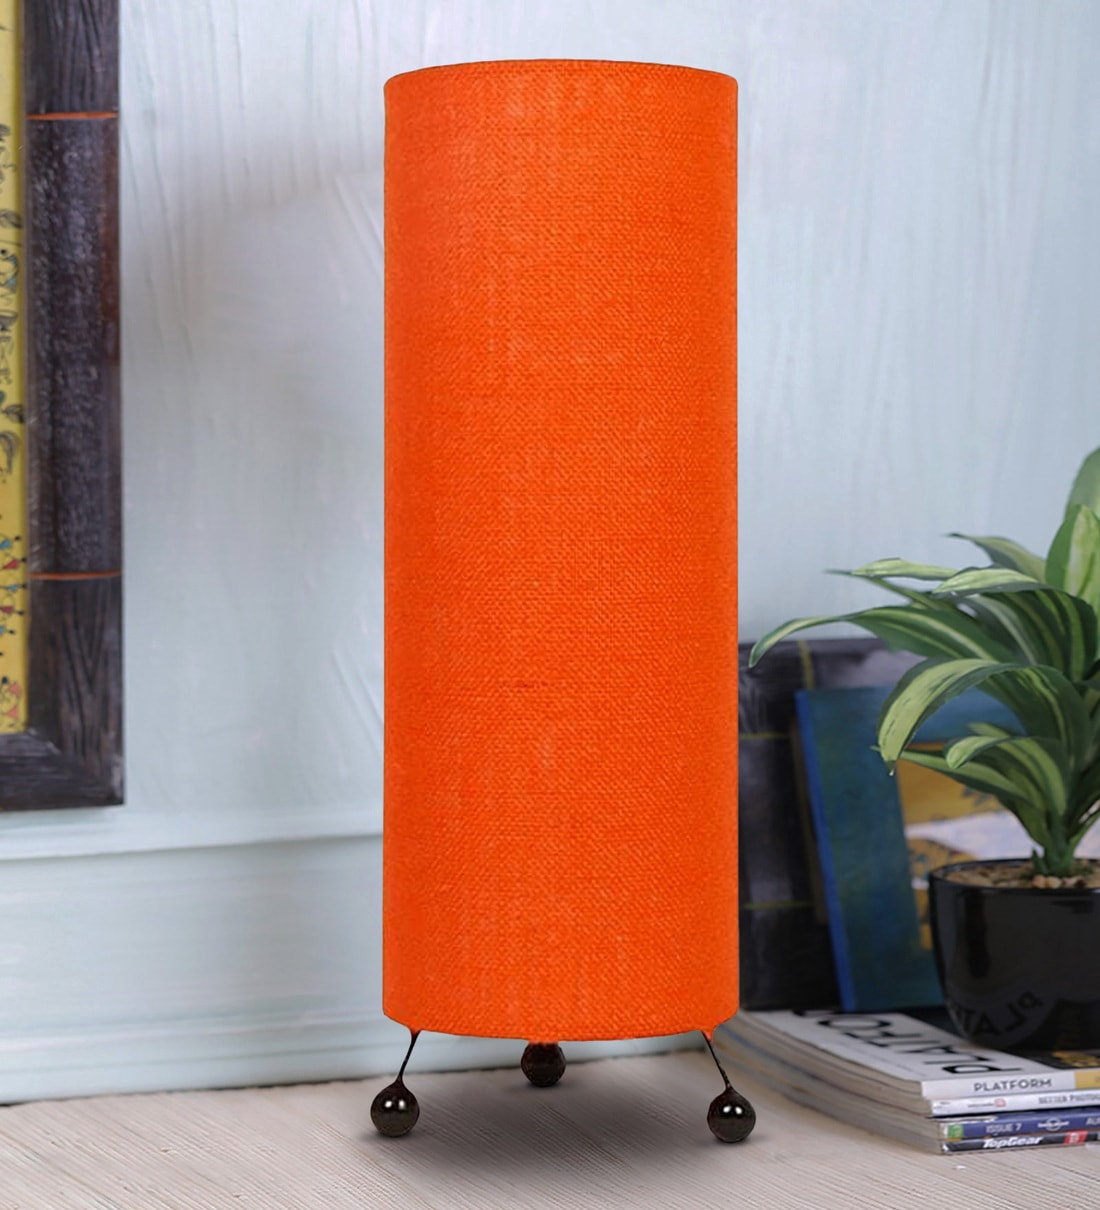 Buy Orange Natural Fiber Shade Table Lamp With Black Base By Lavish Online Modern And Contemporary Table Lamps Table Lamps Lamps Lighting Pepperfry Product